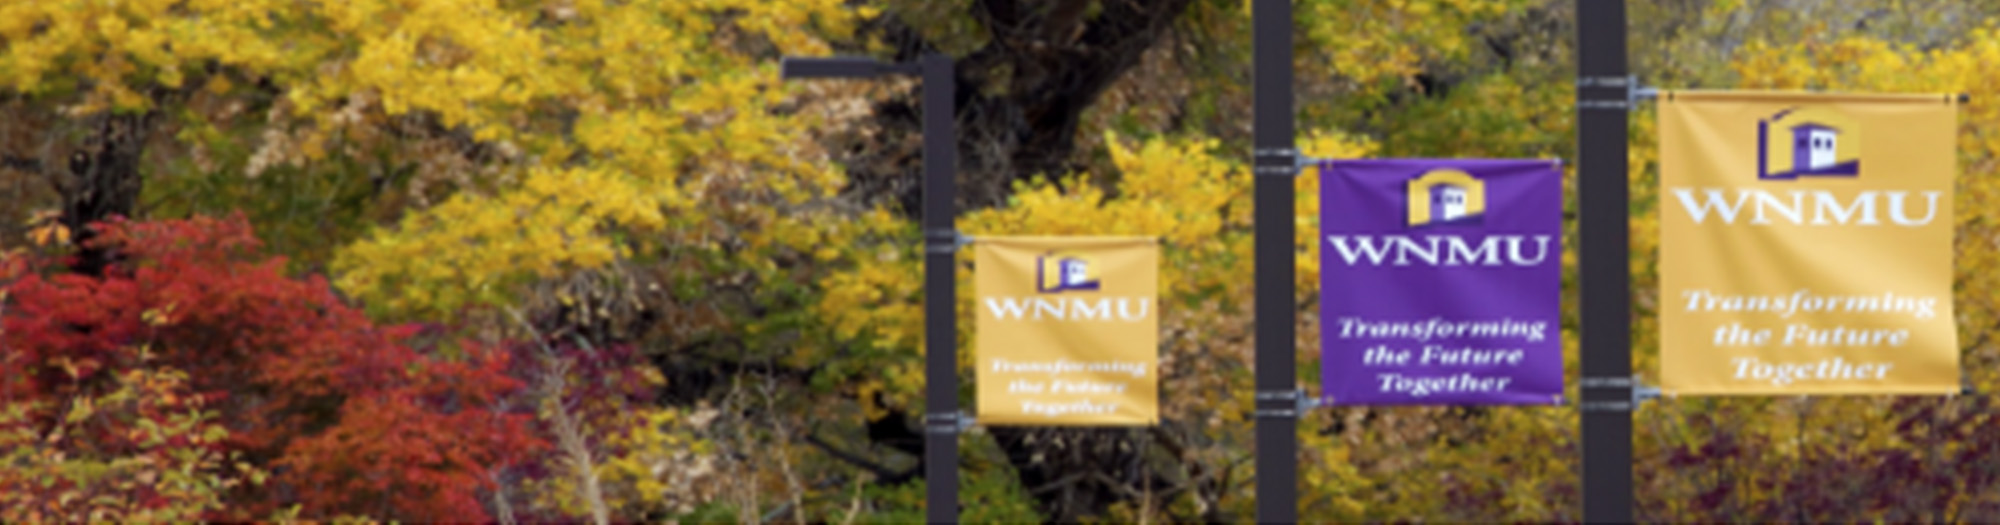 View of colorful trees and banners at WNMU